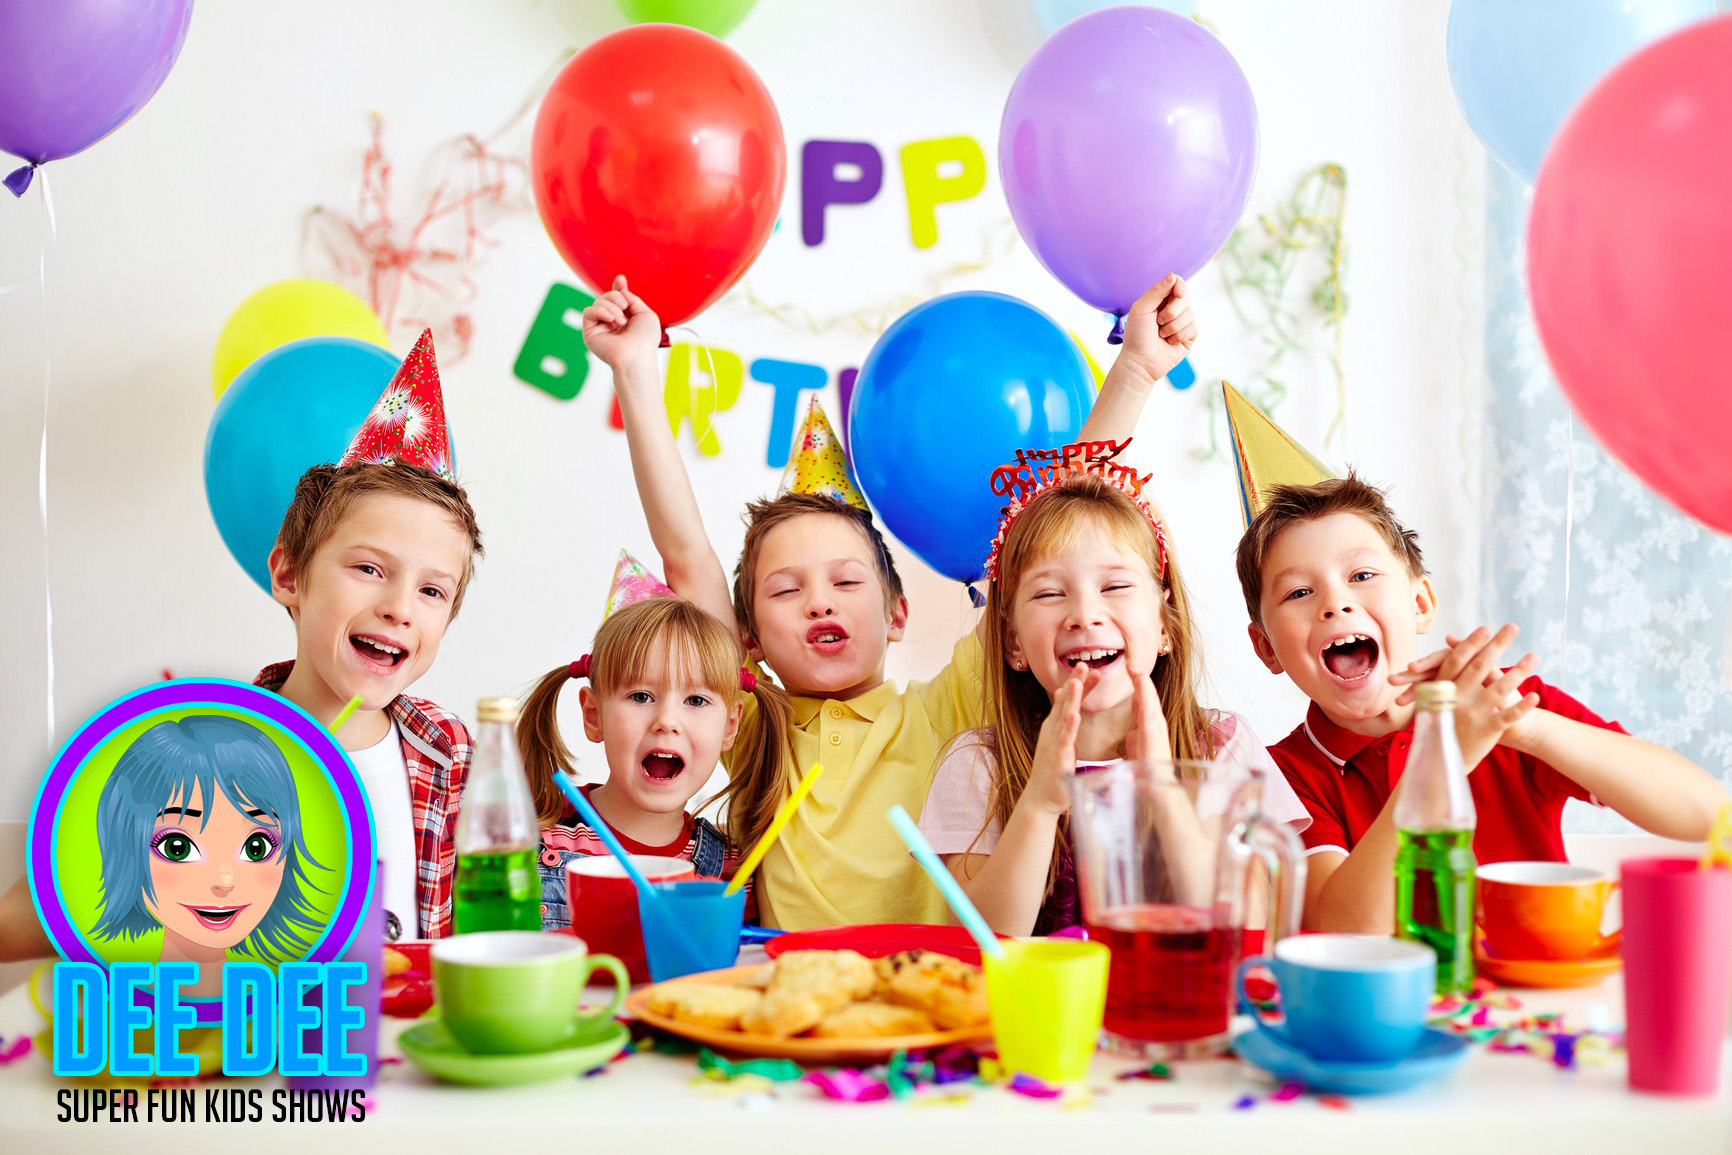 Group of adorable kids looking at camera while having fun at birthday party